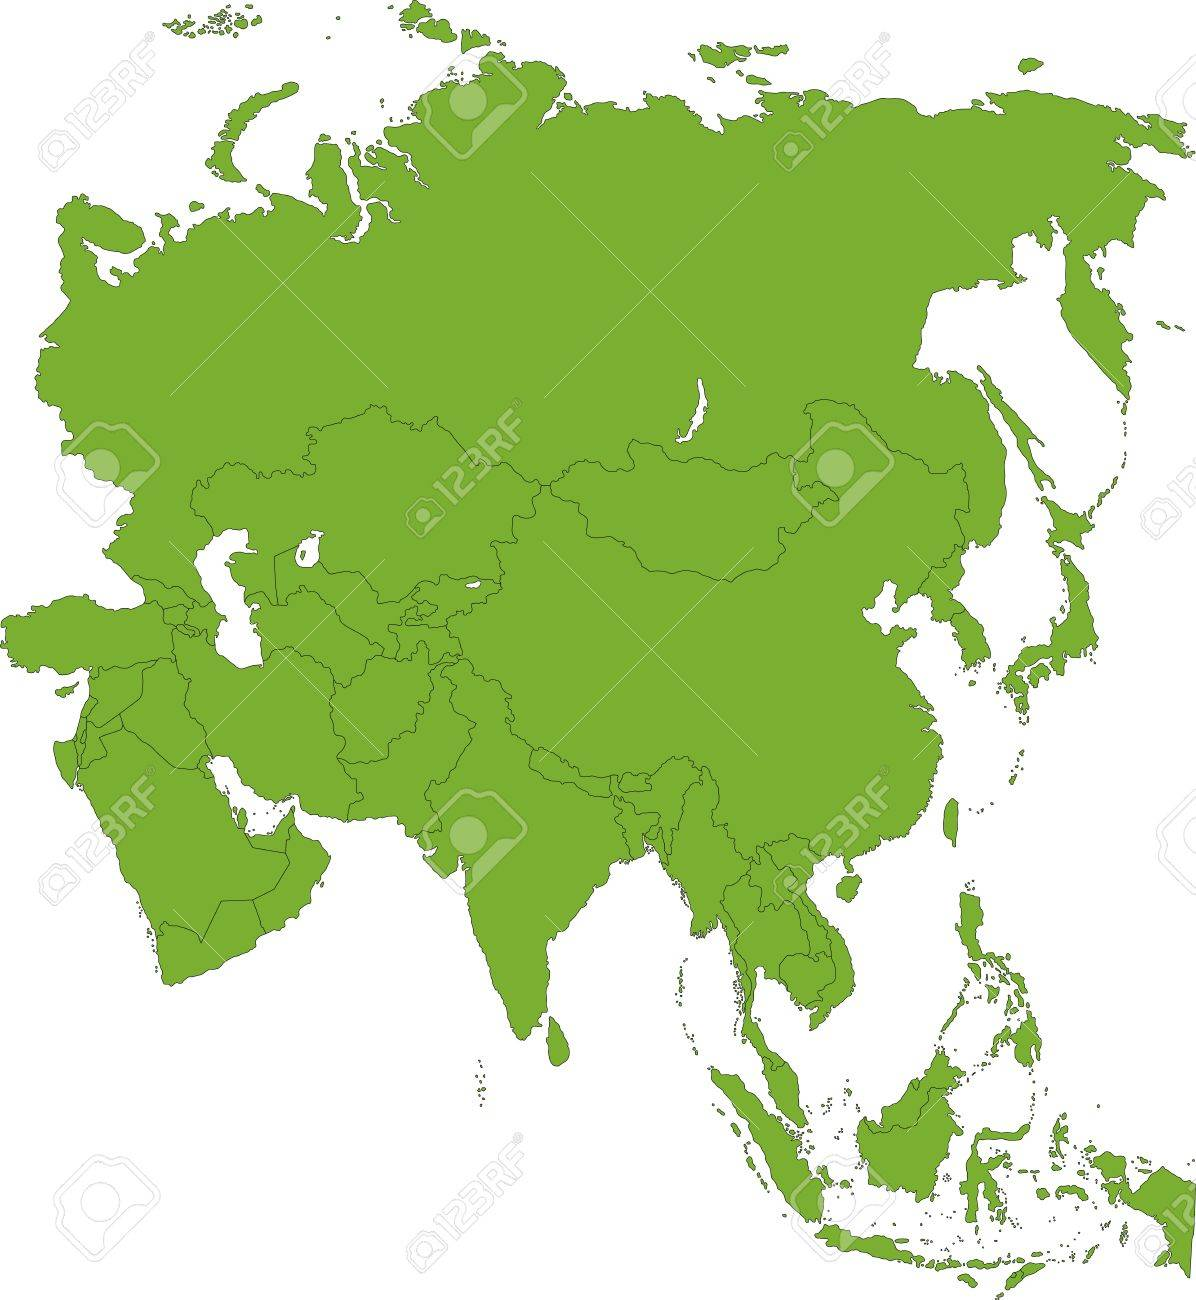 Country Asia Map.Green Asia Map With Country Borders Royalty Free Cliparts Vectors